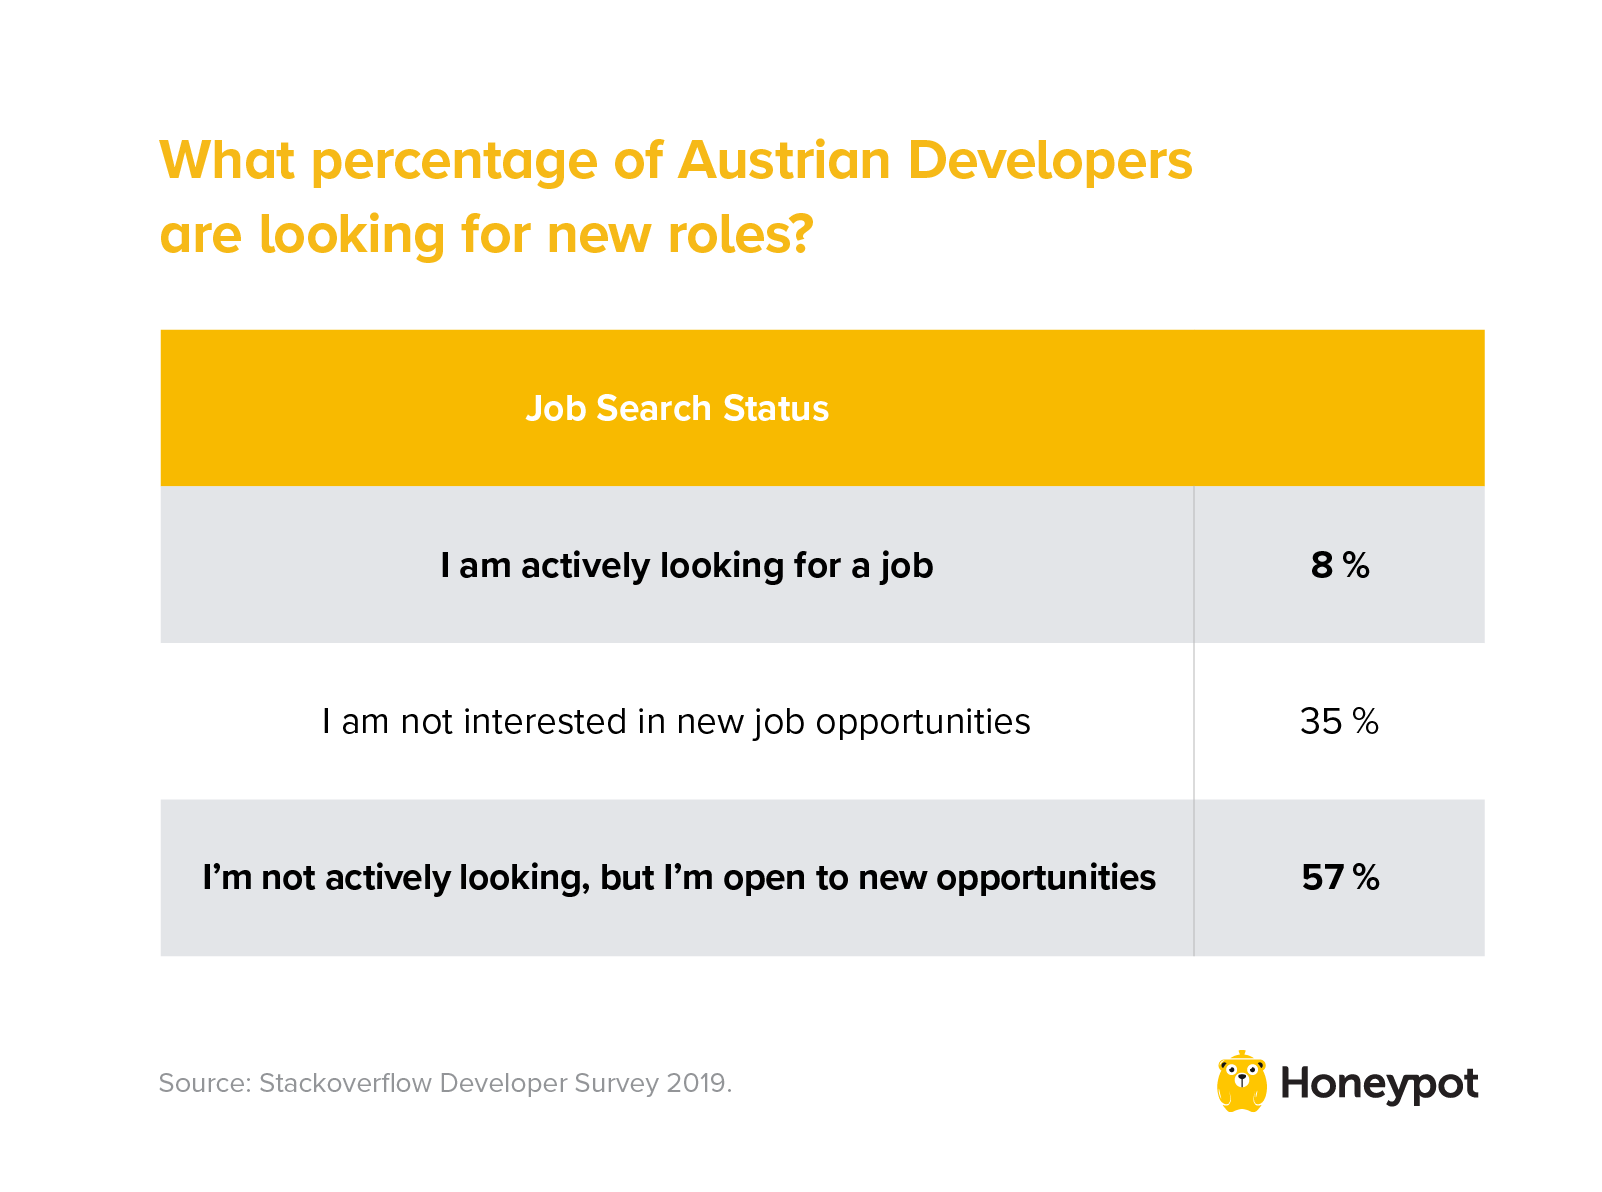 What percentage of Austrian developers are looking for new roles?